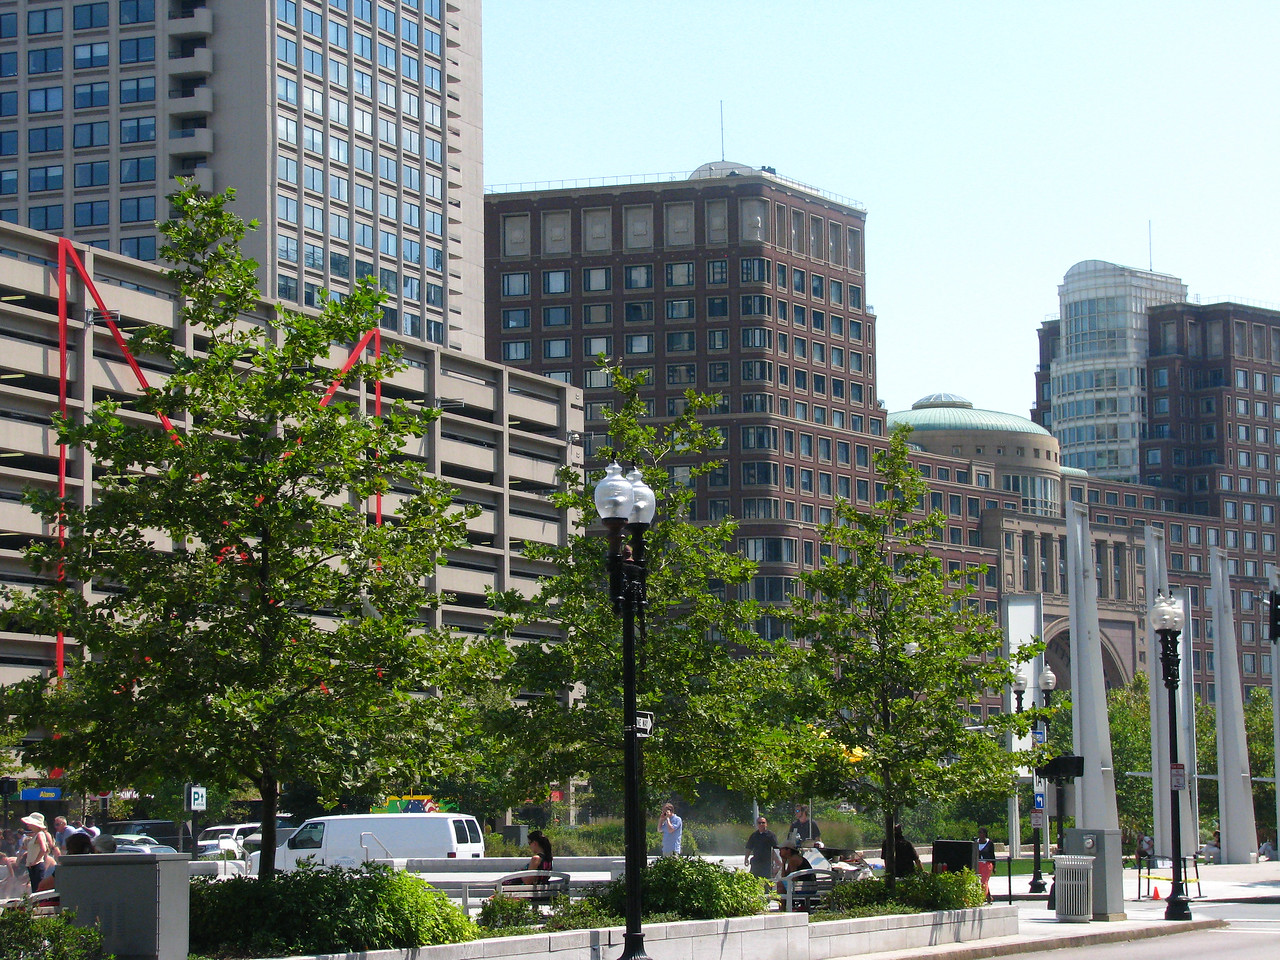 Downtown near Boston Harbor.